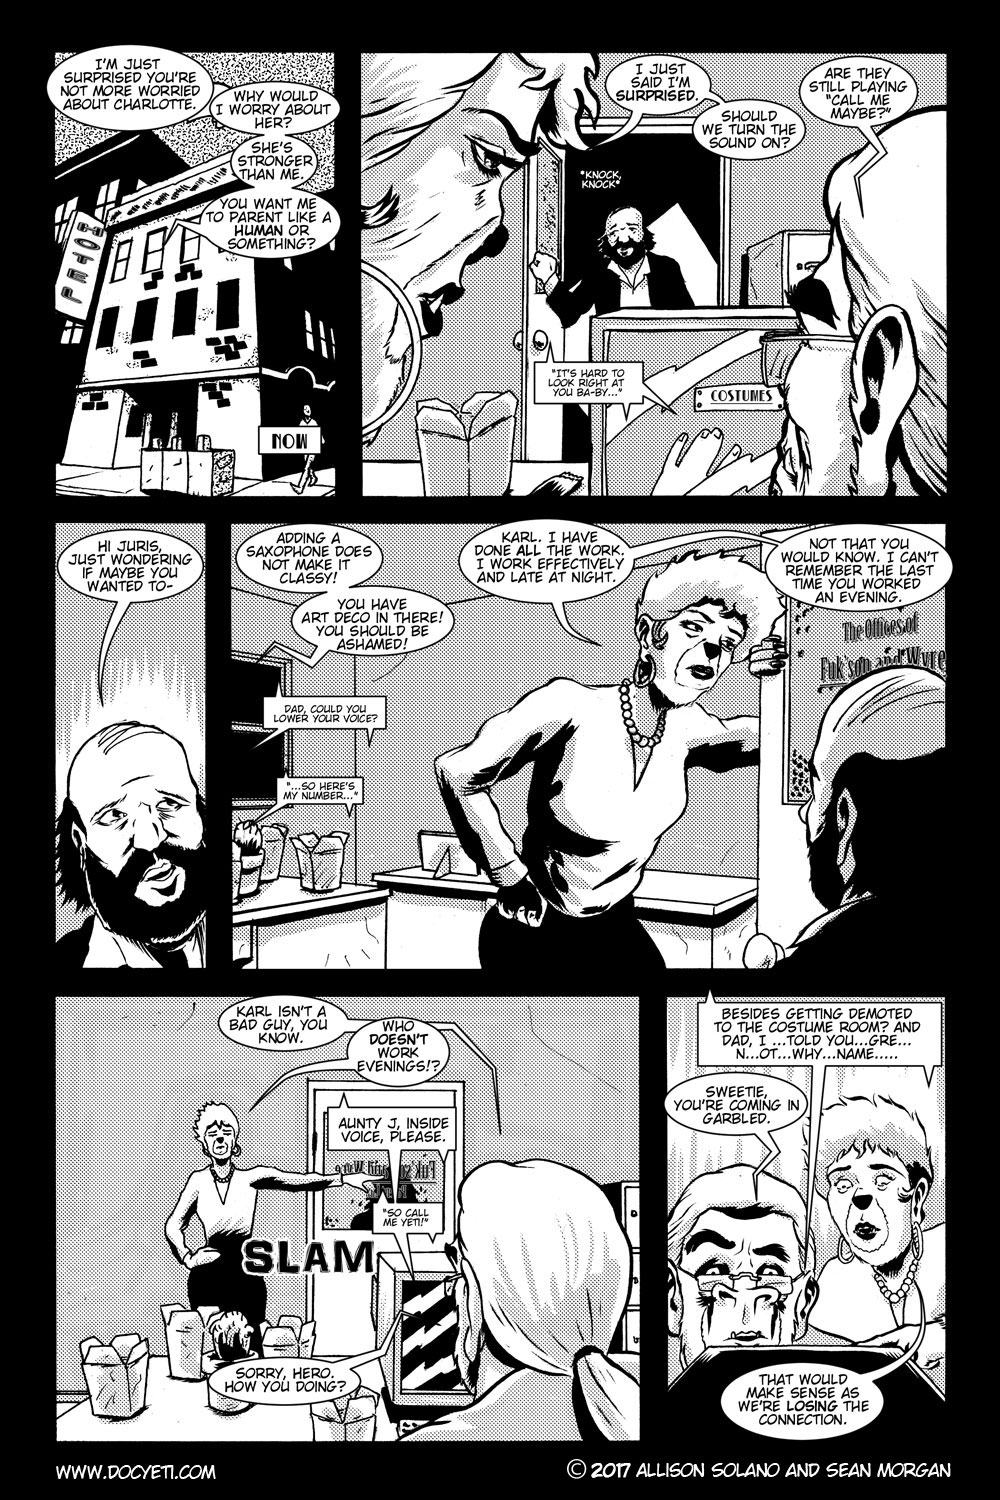 This Yeti for Hire! or the Yeti with the Lace Kerchief! Issue 2 pg.2